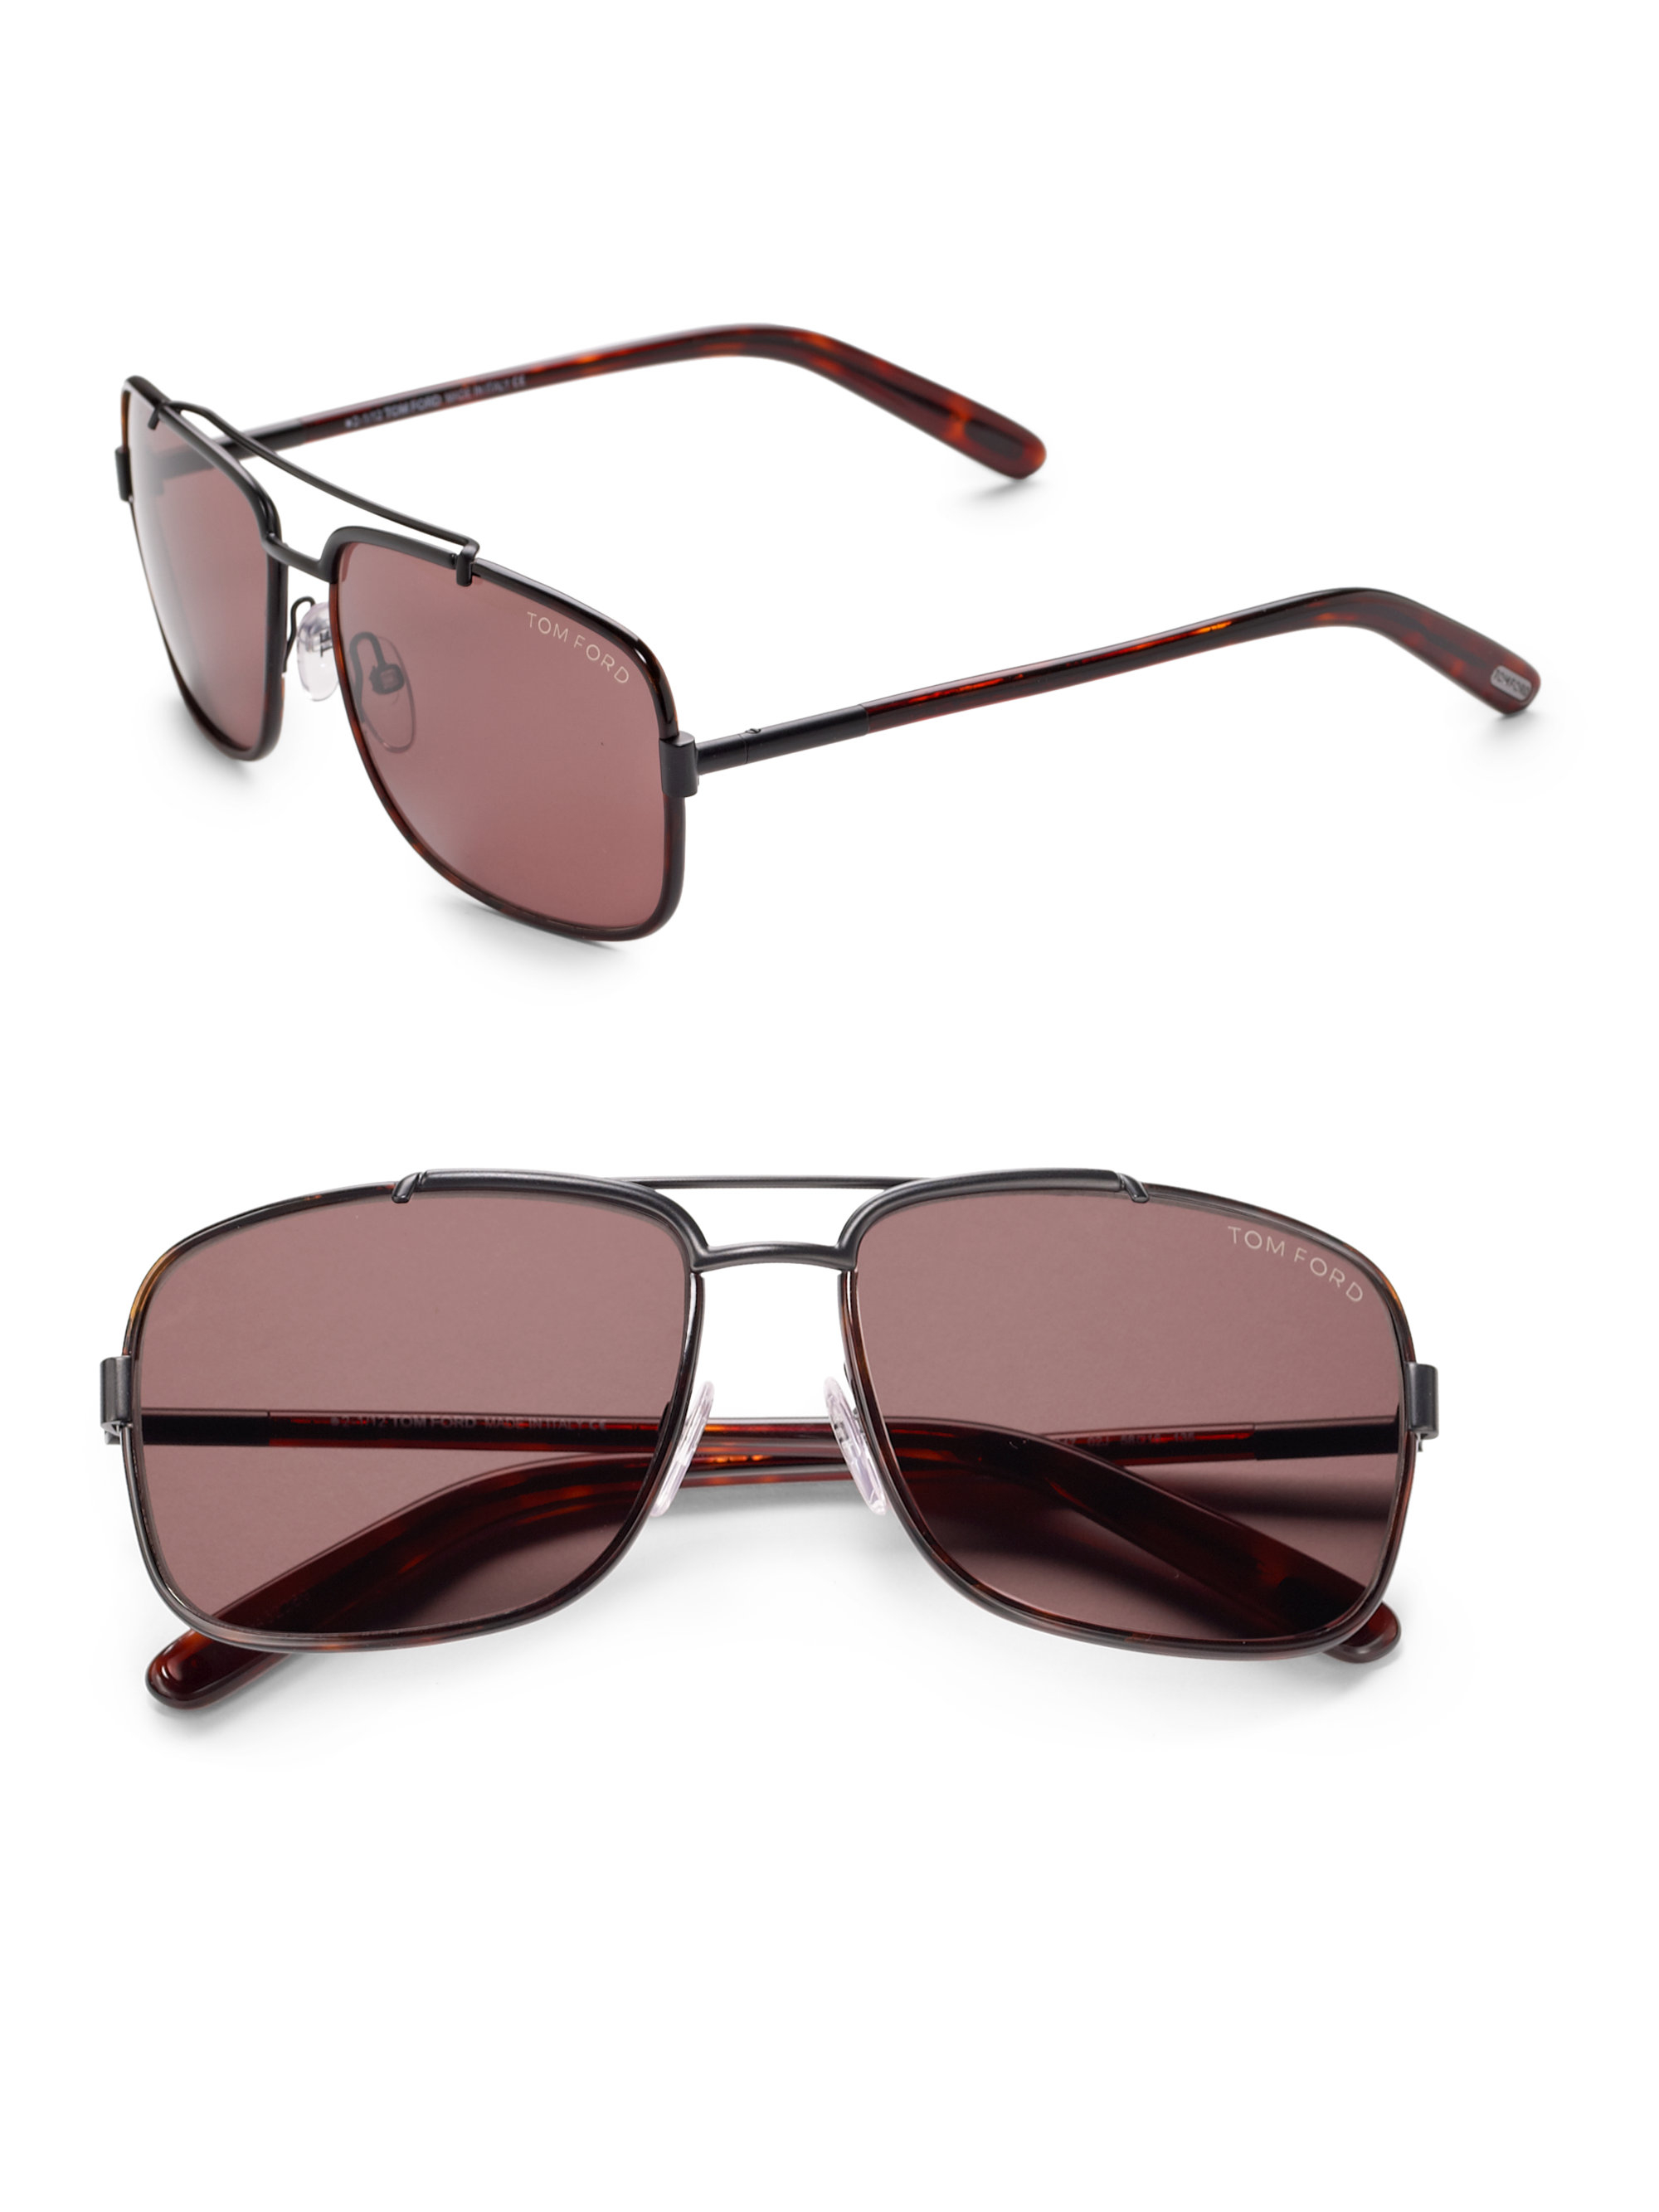 dcb57eceea47 Lyst - Tom Ford Martine Sunglasses in Brown